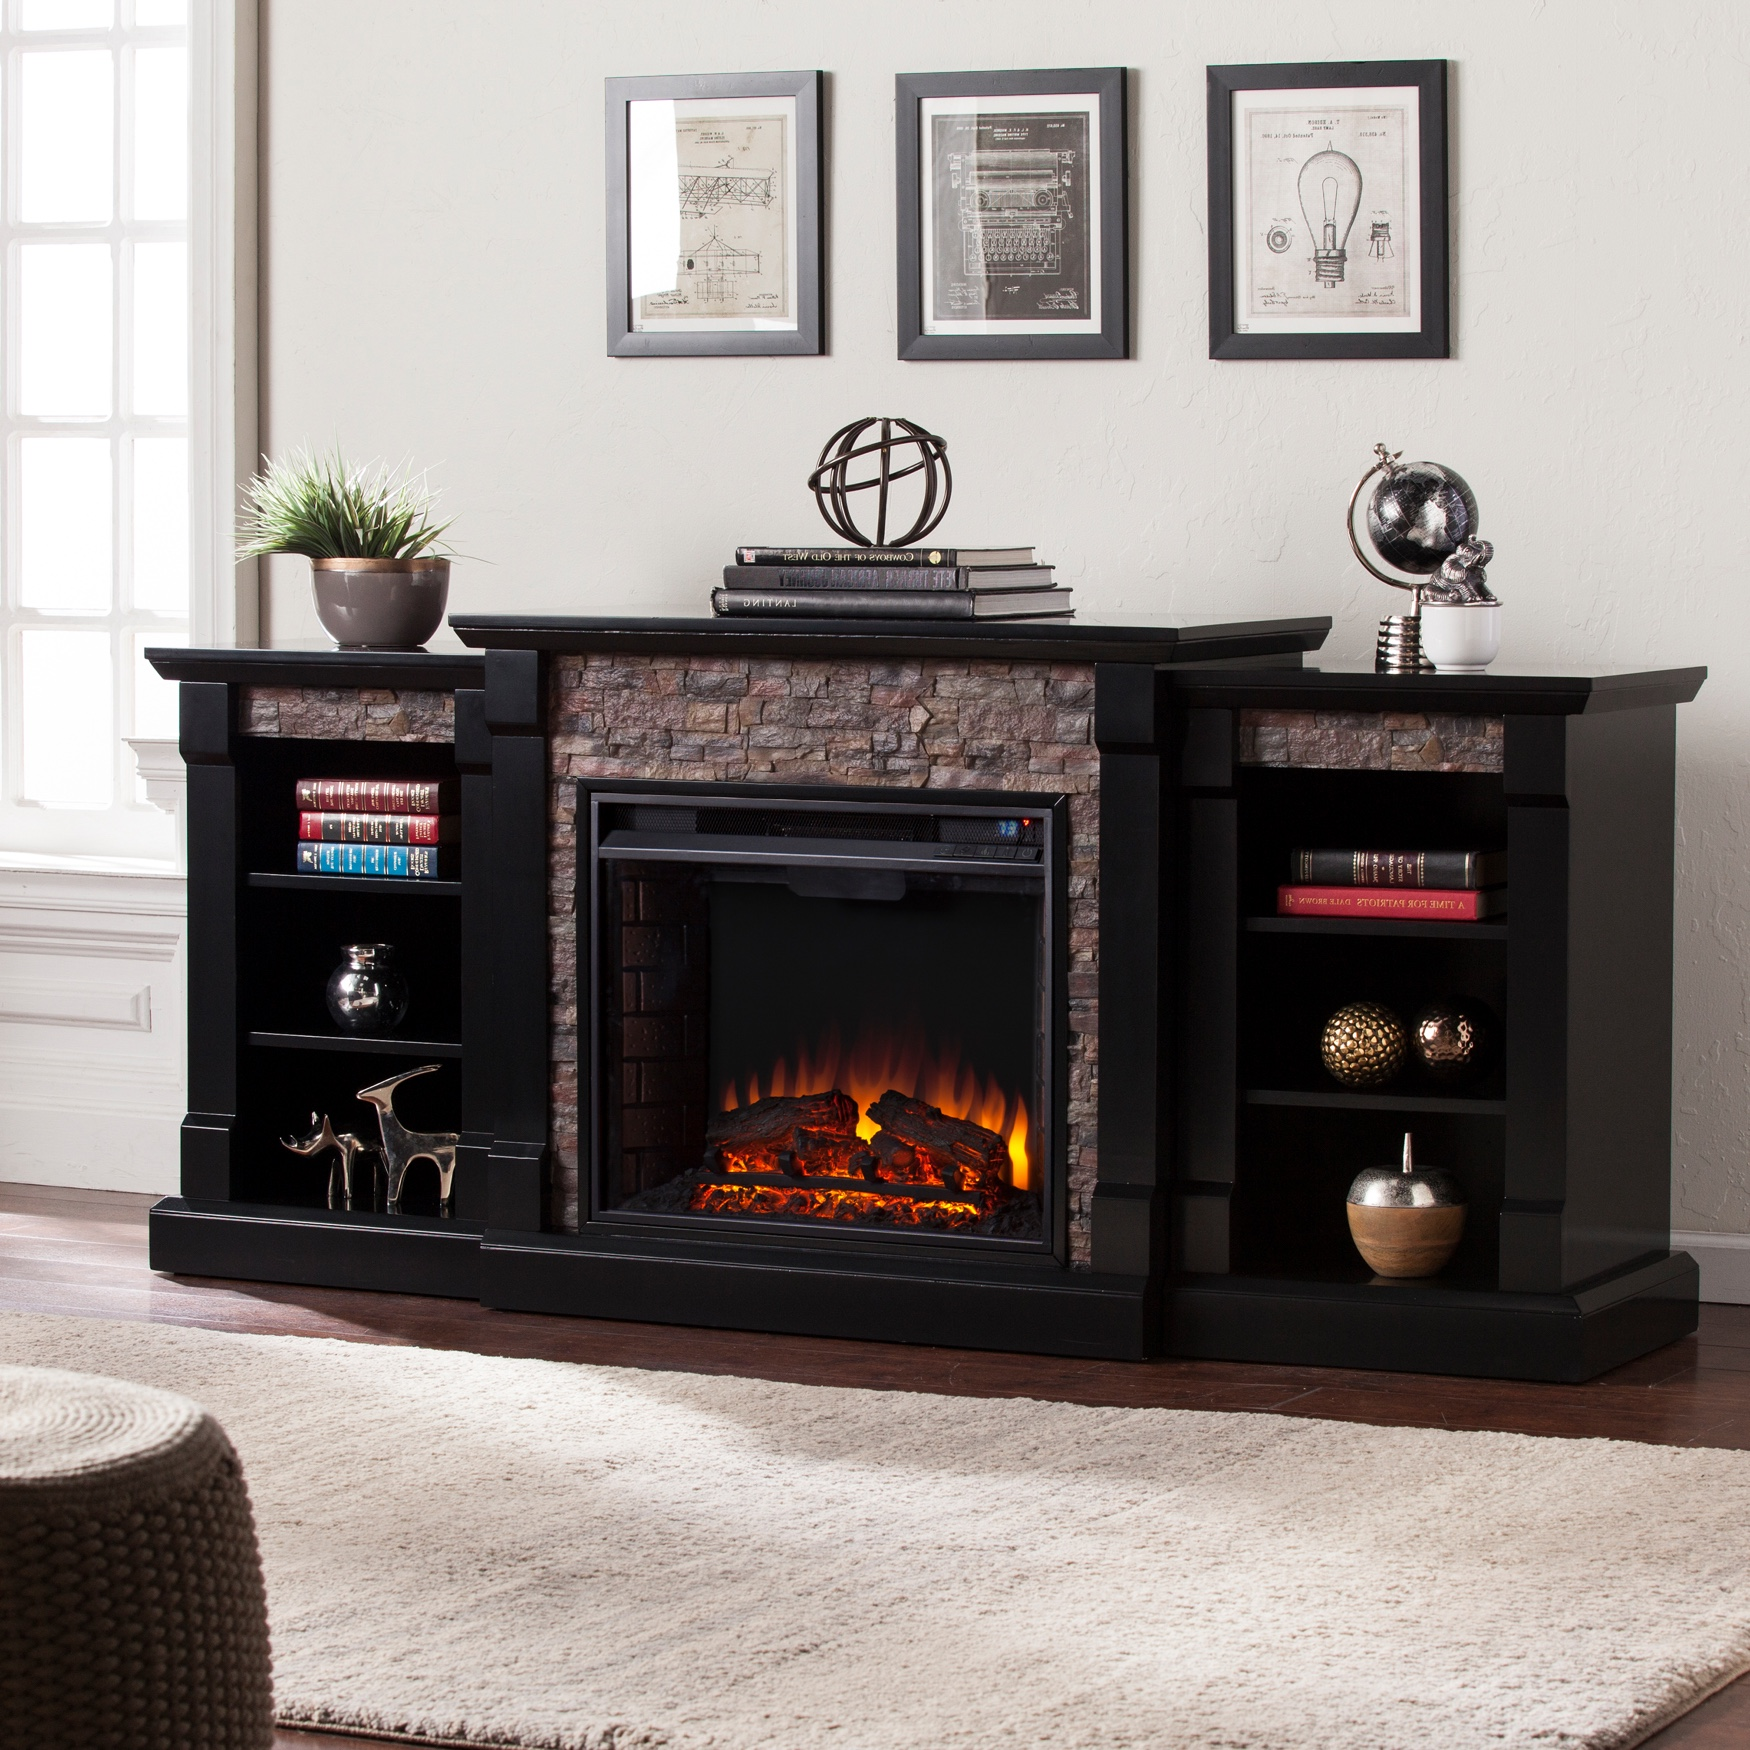 Gallatin Faux Stone Electric Fireplace with Bookcases, BLACK